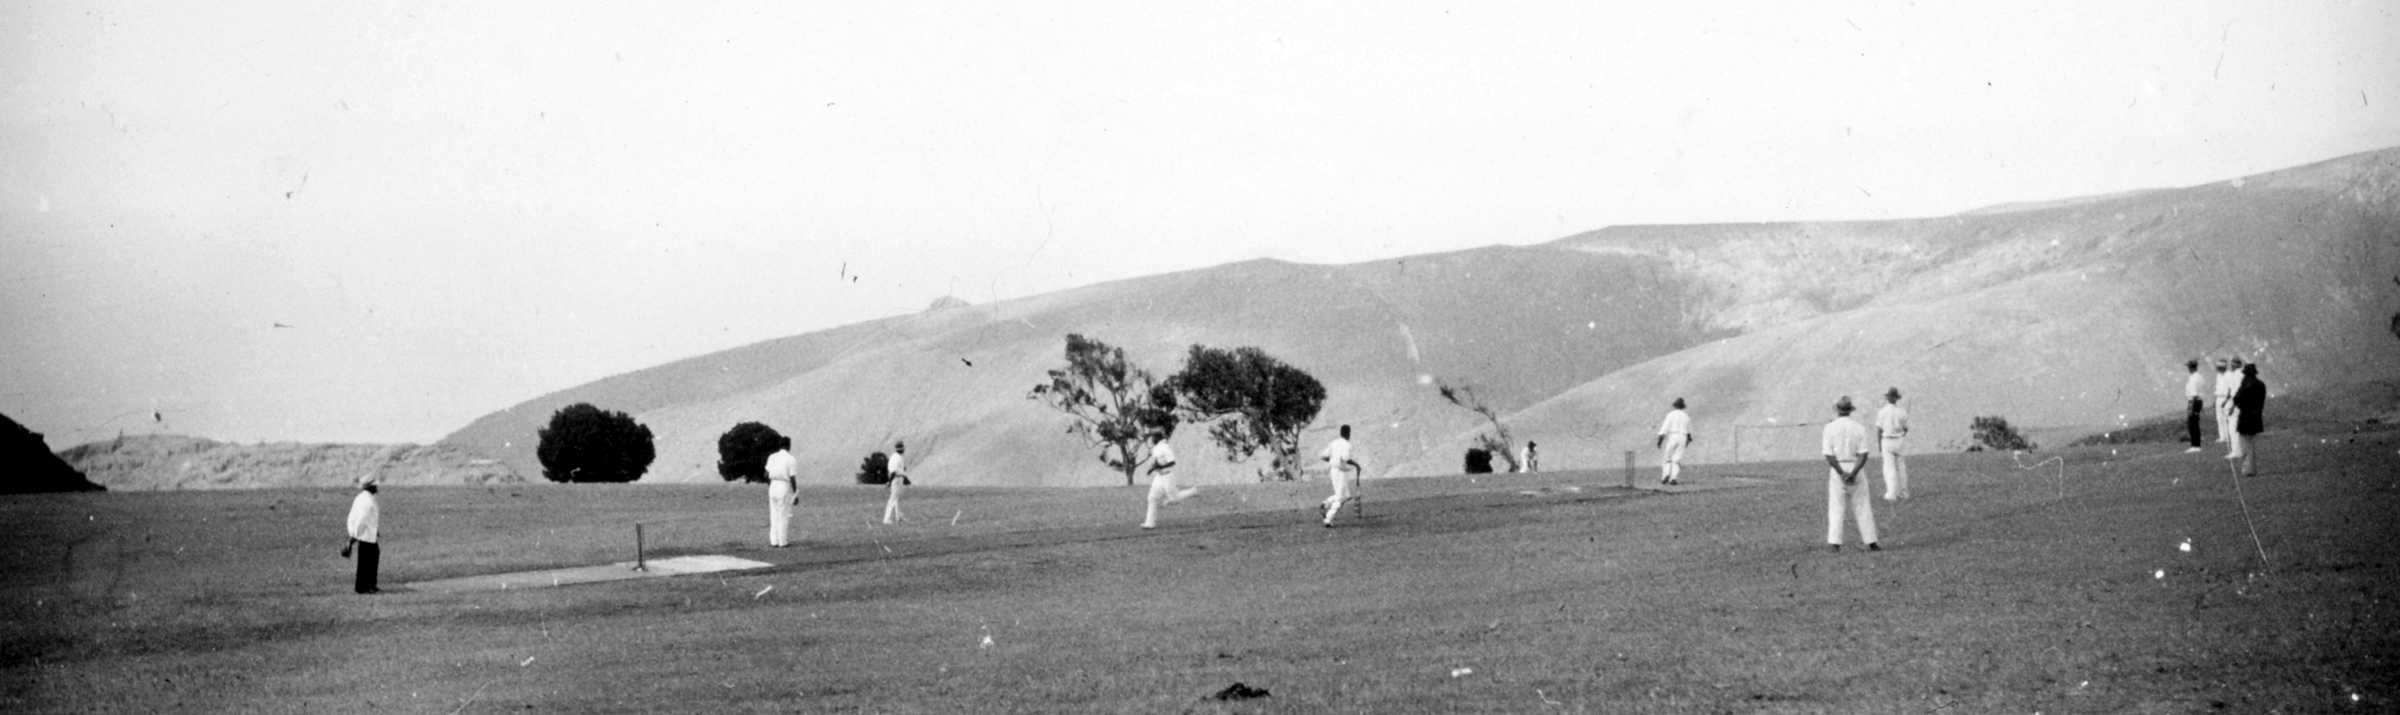 Cricket on Francis Plain, 1930s - note the slope!